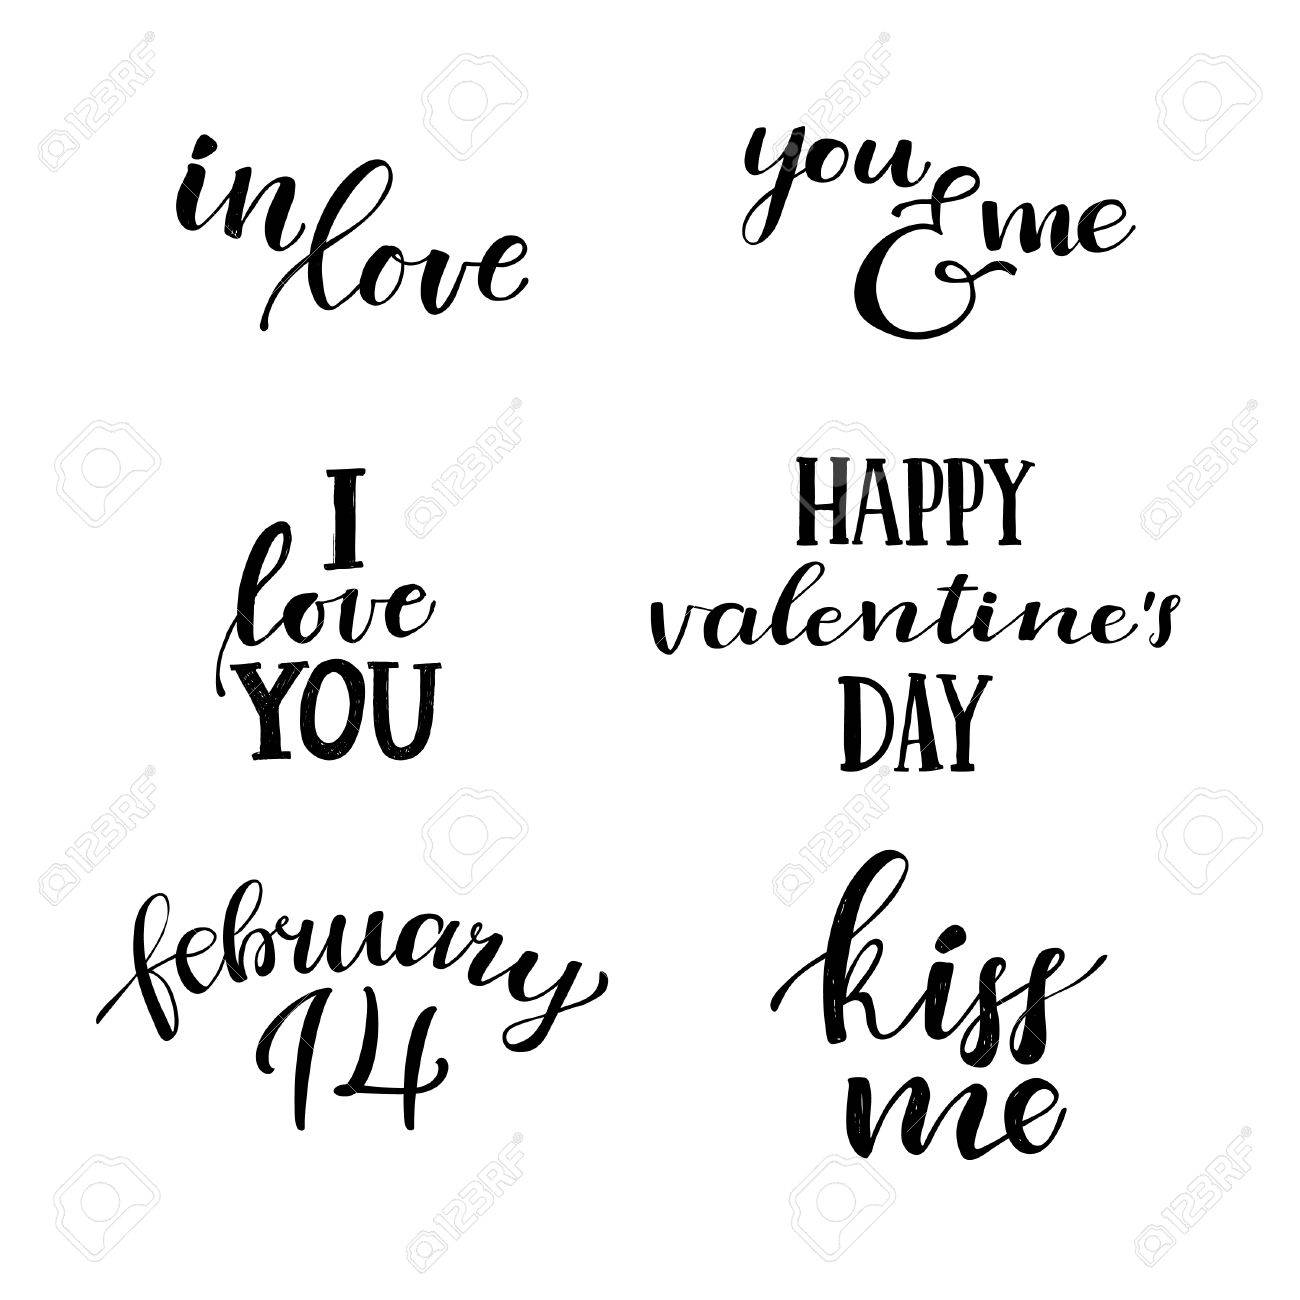 Love You More Quotes I Love Youhand Lettering Vintage Quotes About Lovemodern